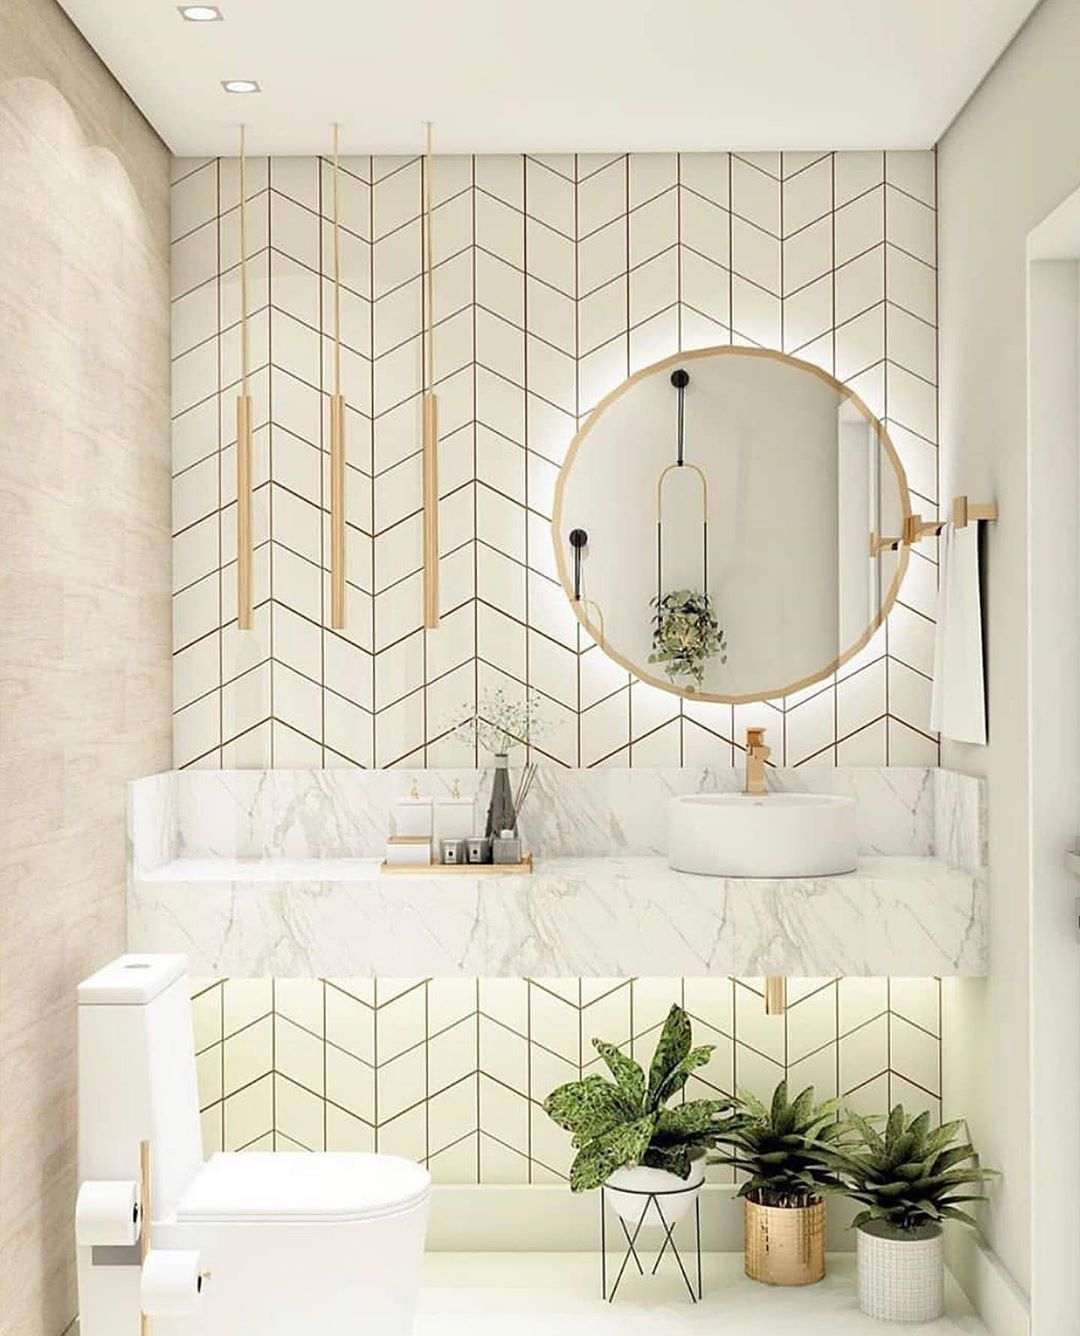 Greyhunt Interiors On Instagram Nothing Like Some Fab Tile Work To Wake You Up Every Morning In 2020 Bathroom Interior Design Bathroom Interior Bathroom Design Small